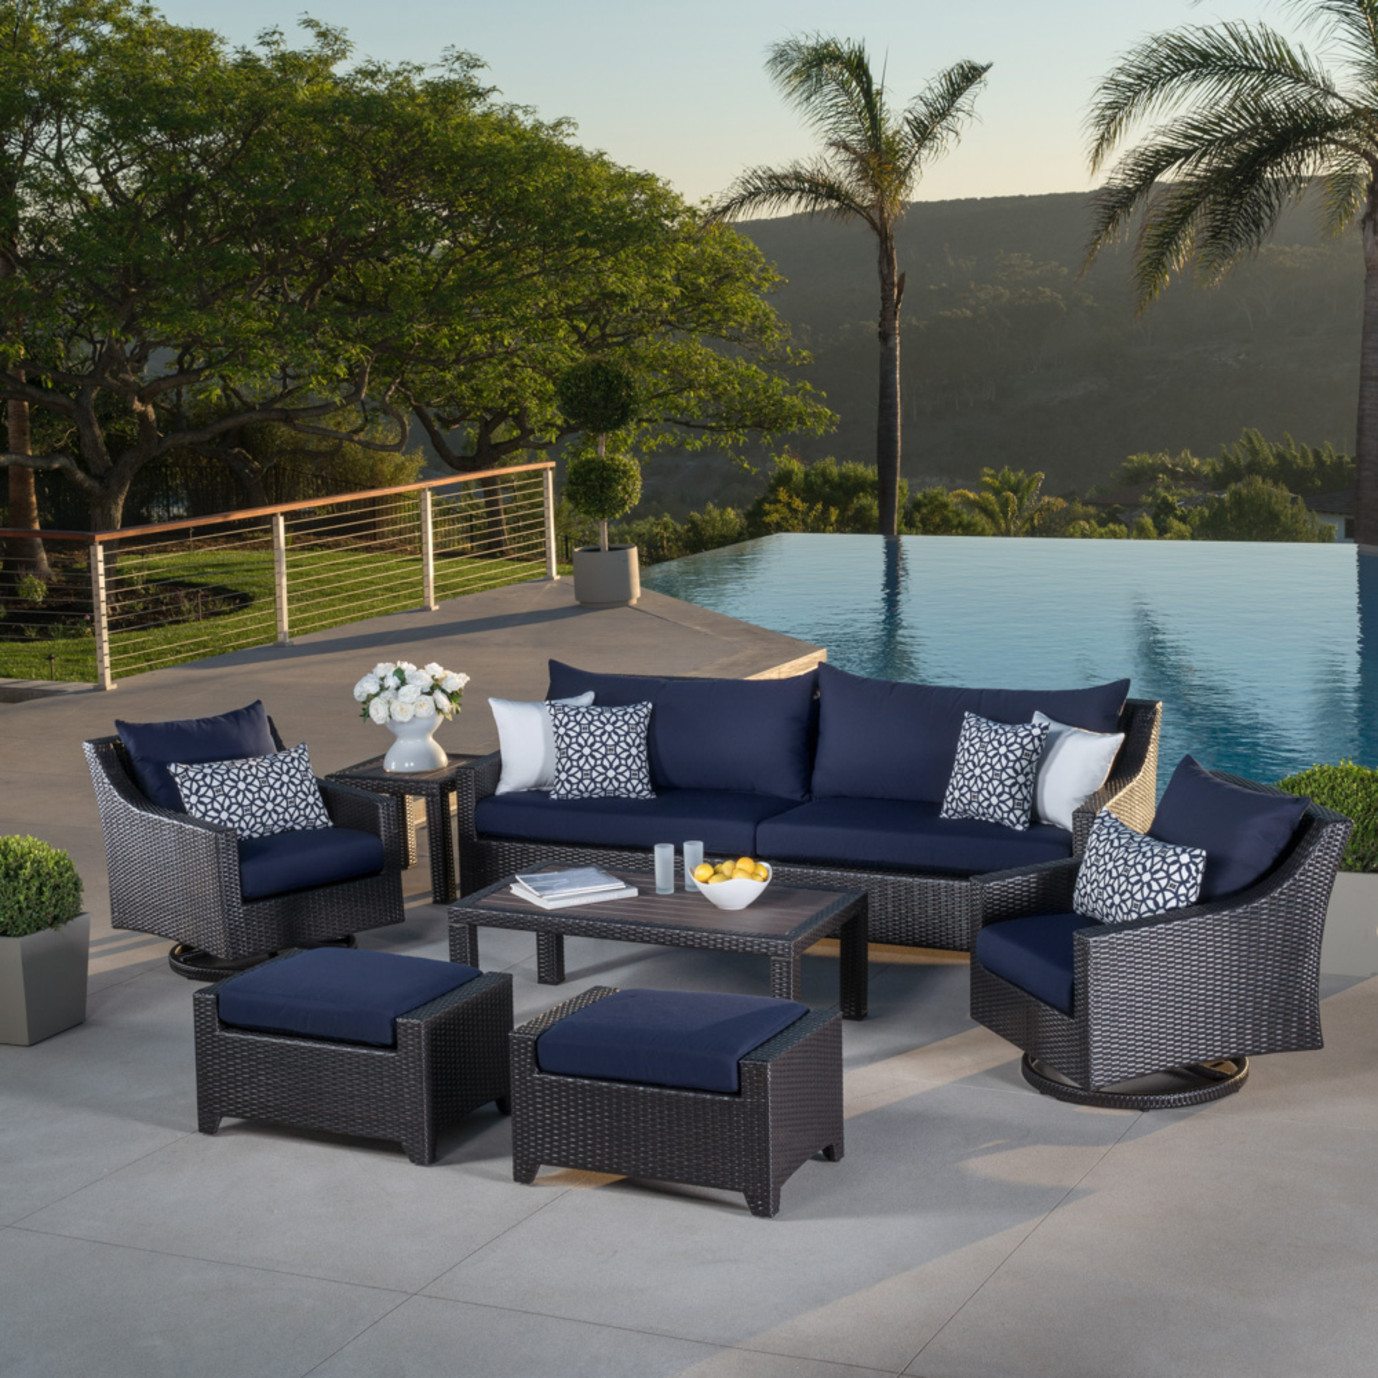 Deco™ Deluxe 8 Piece Sofa & Club Chair Set - Navy Blue